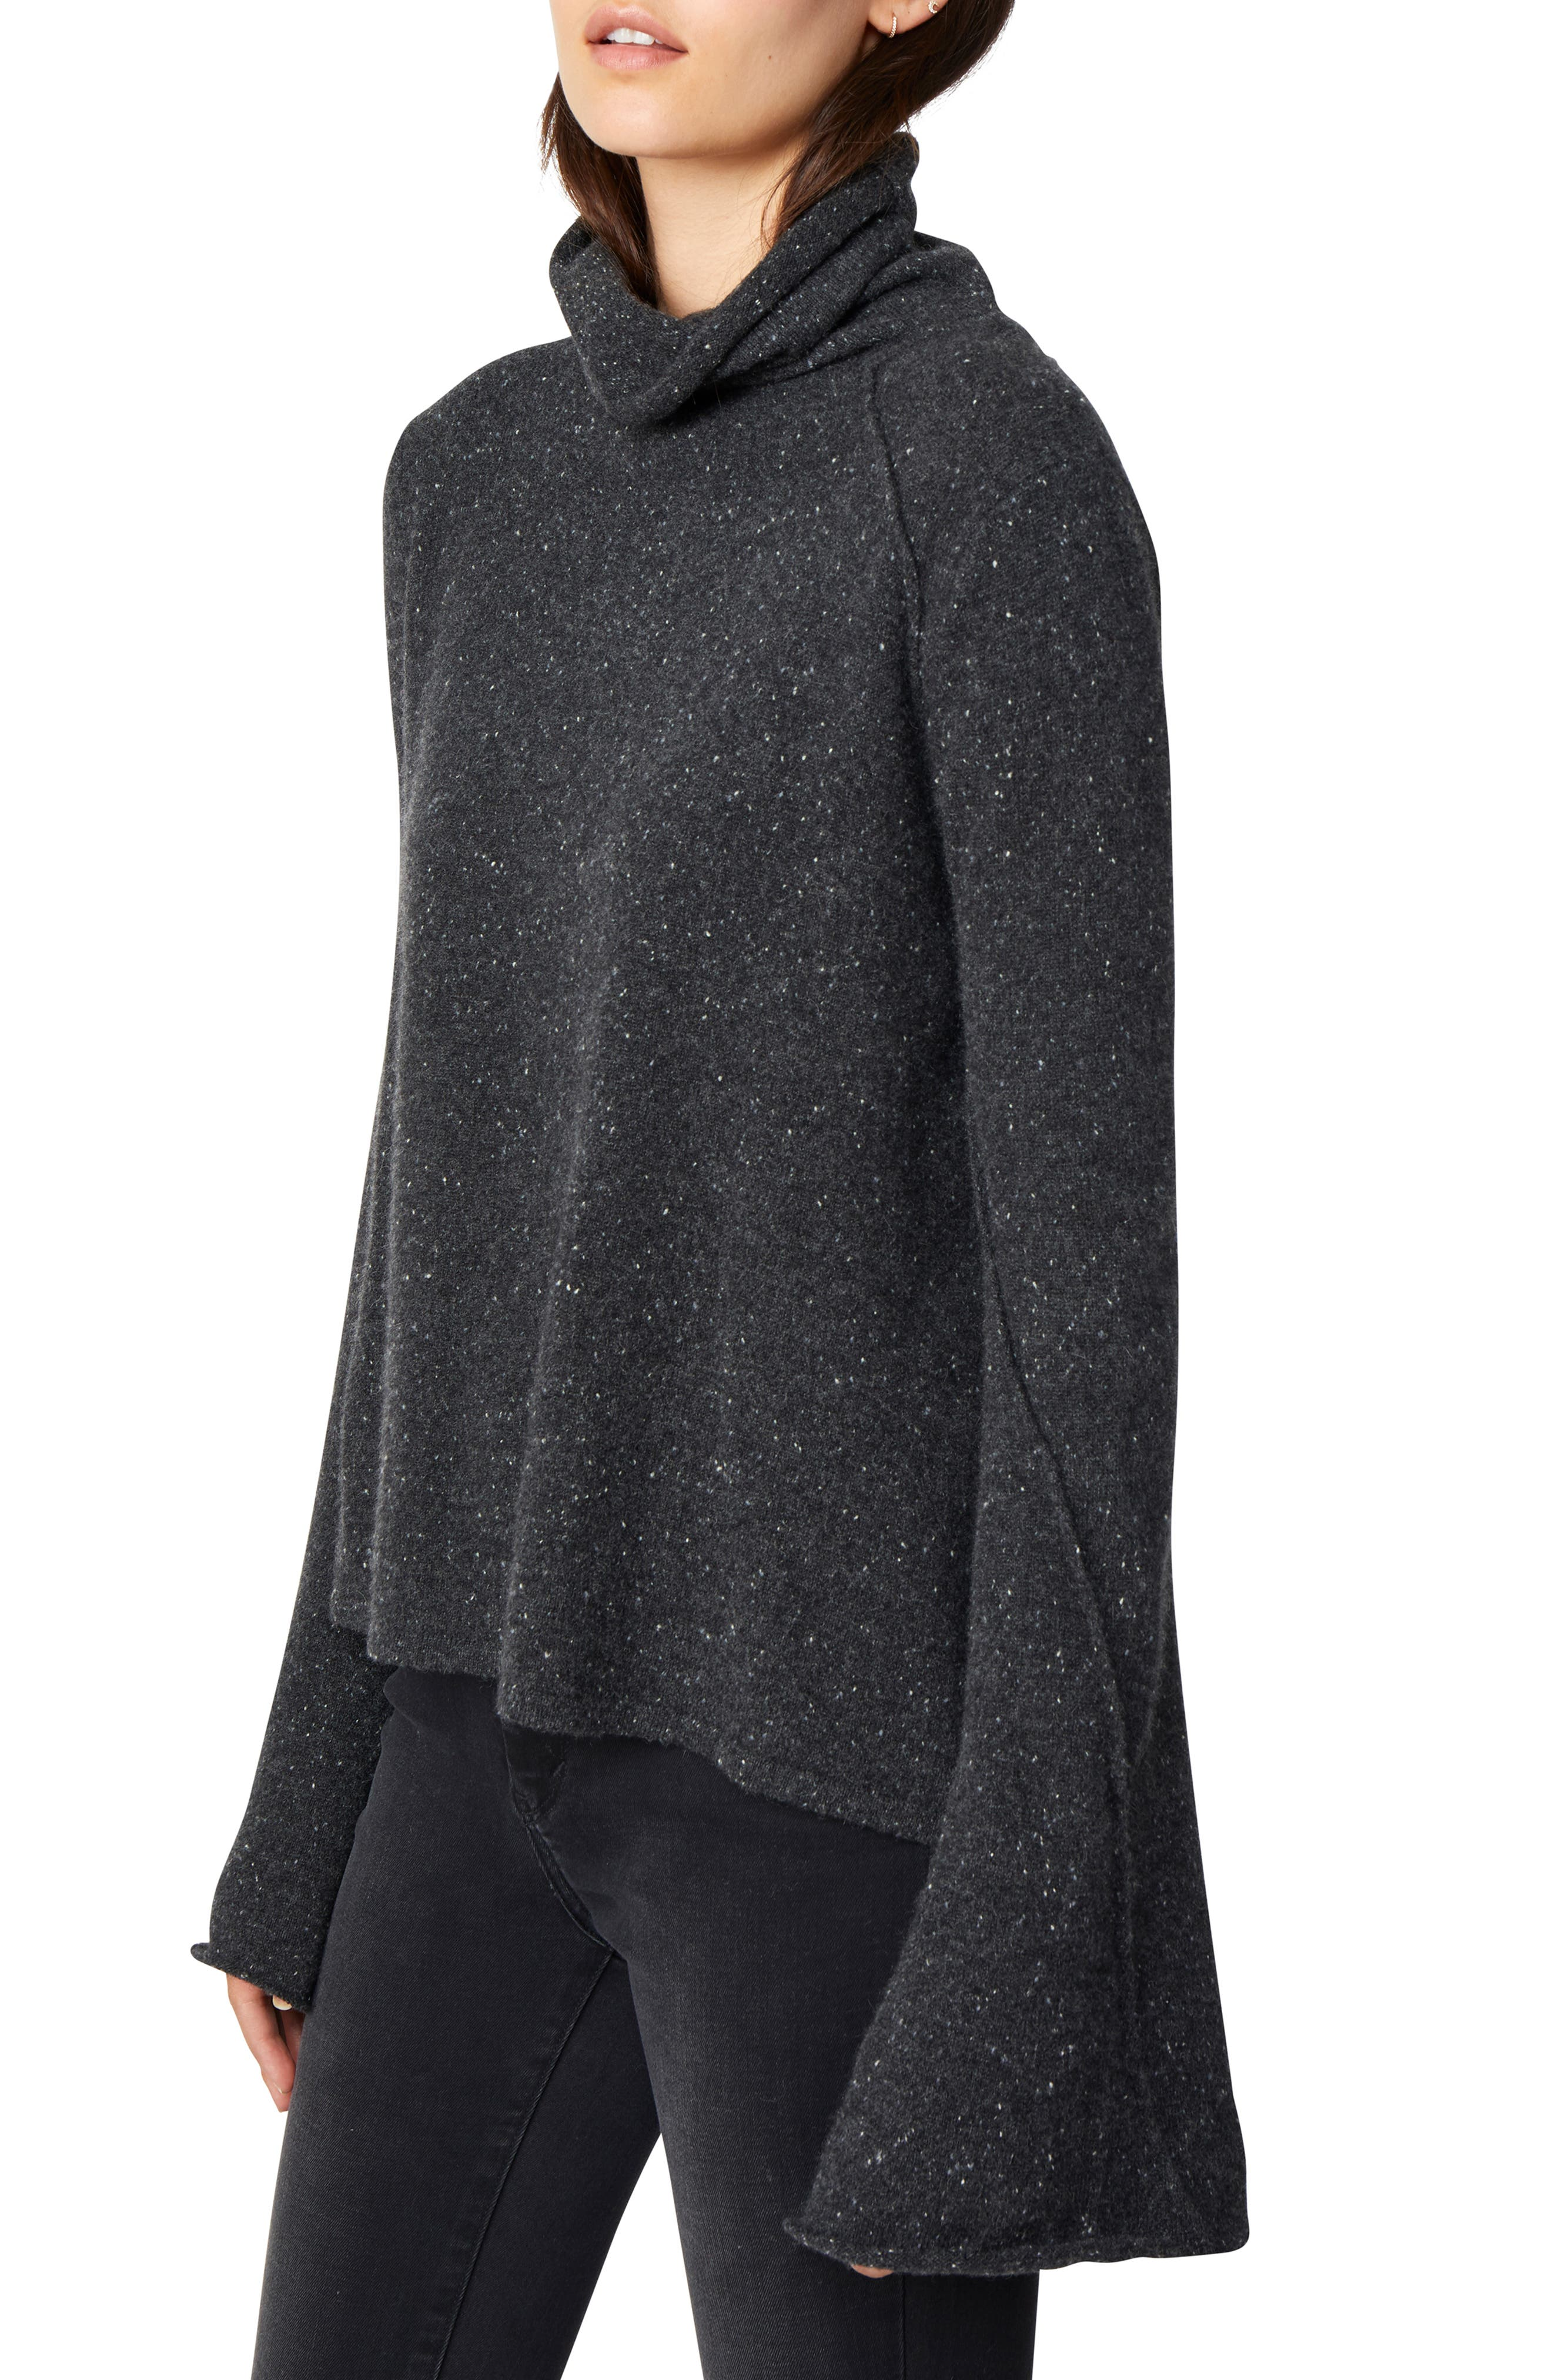 HABITUAL, Adalyn Oversize Bell Sleeve Cashmere Sweater, Alternate thumbnail 3, color, 001